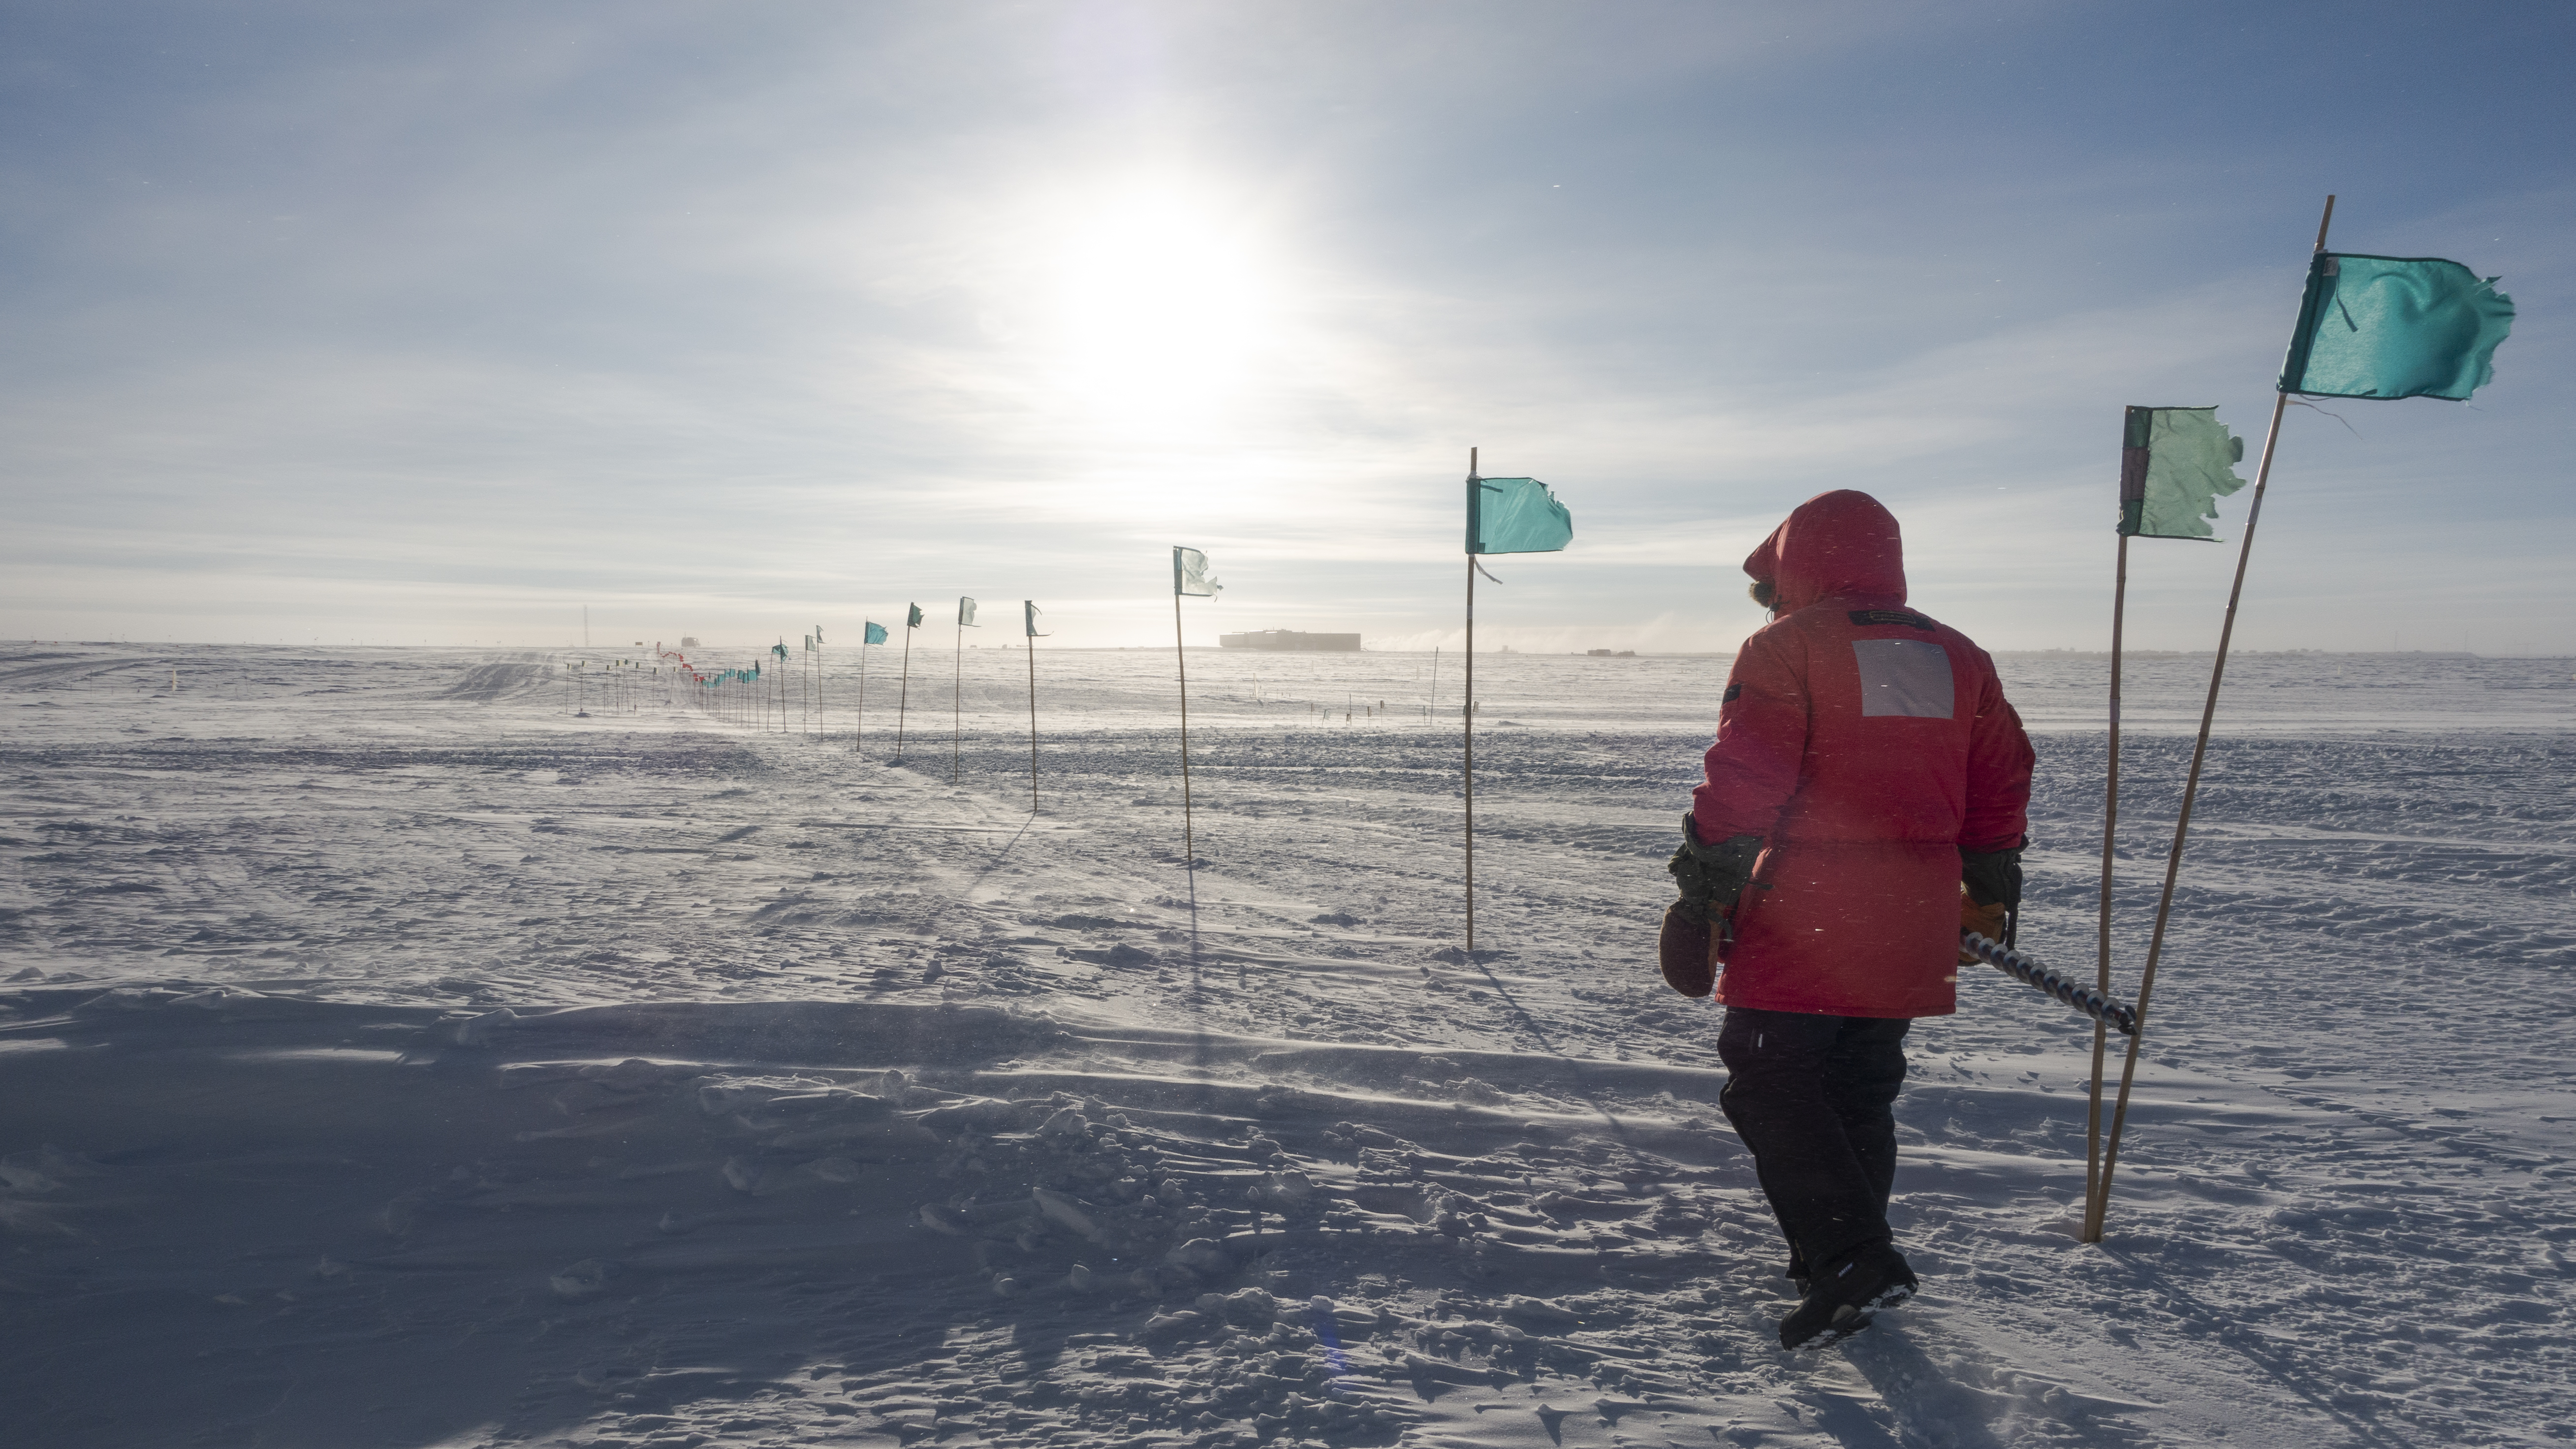 Person in red parka seen from behind as they walk along flag line to the South Pole station.